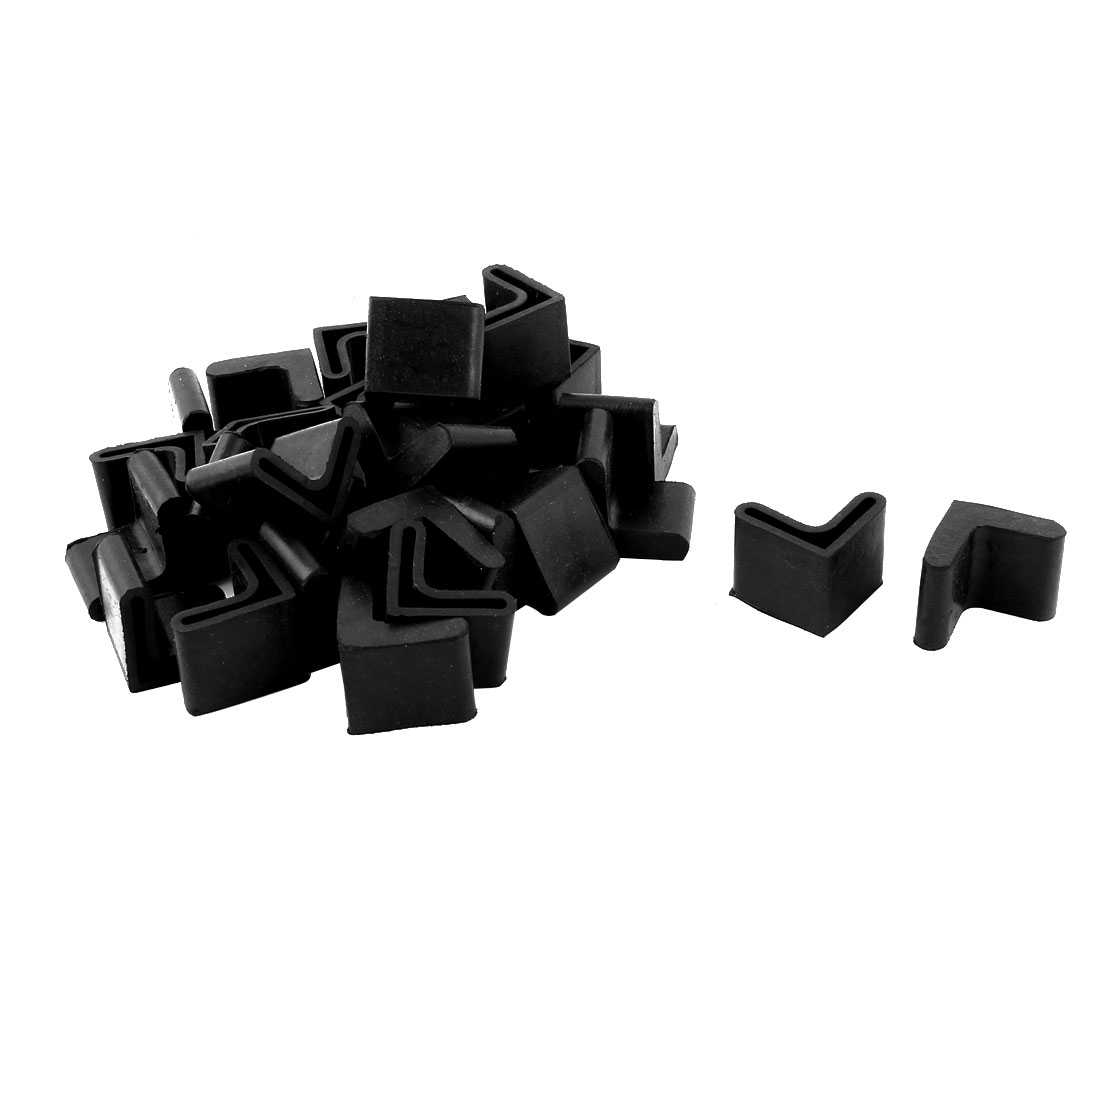 Home Rubber L Shape Furniture Table Foot Cover Pads Black 25mm x 25mm 29 Pcs